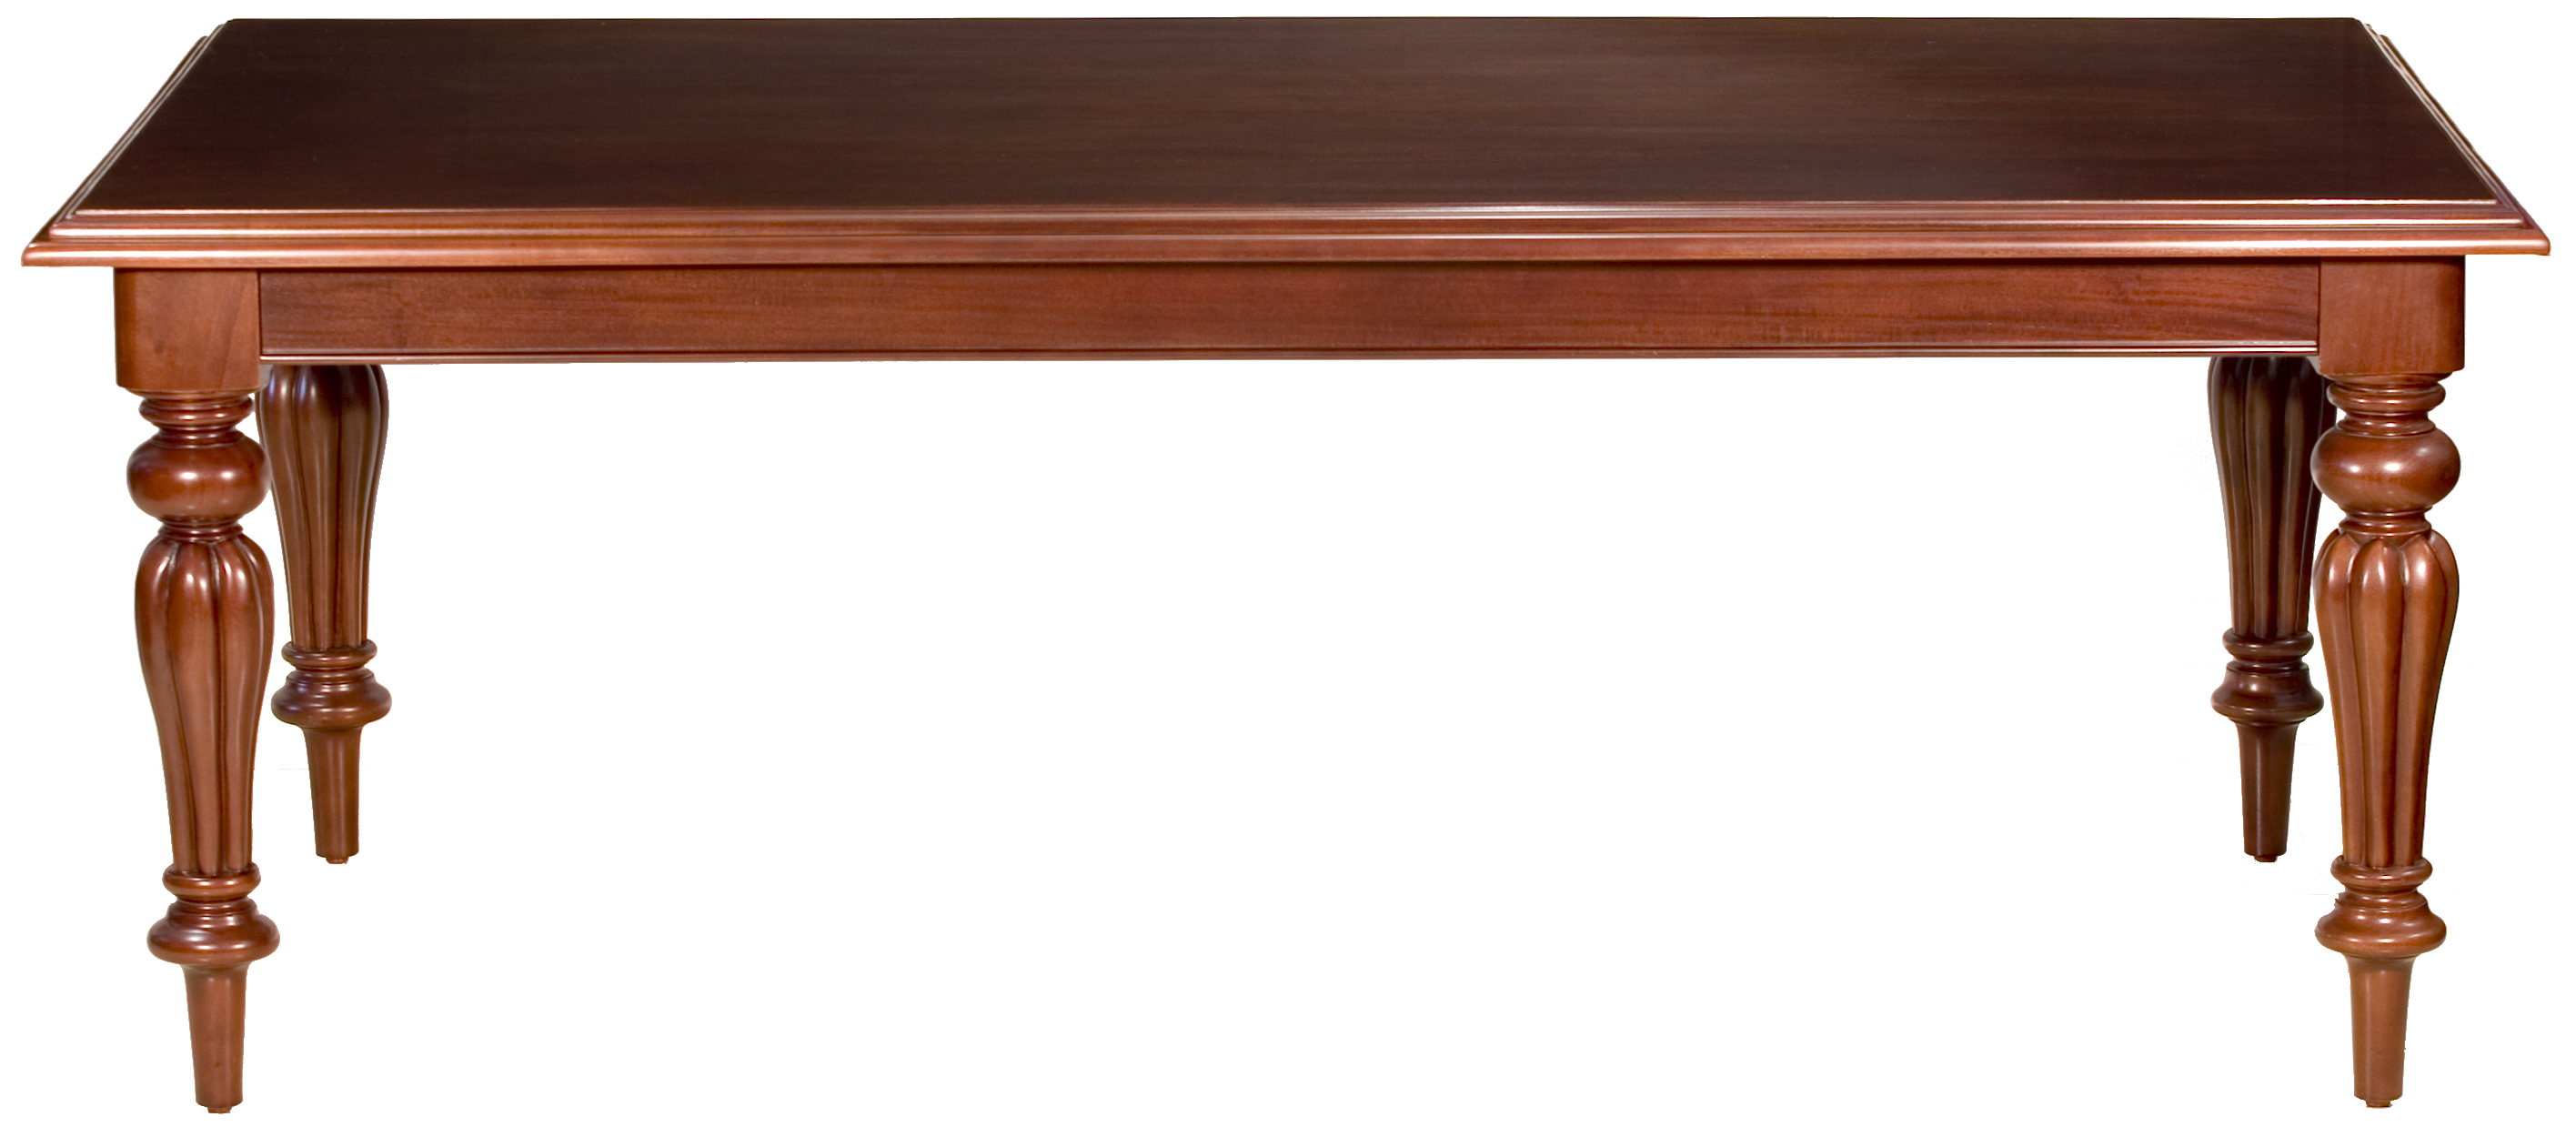 Marvelous VICTORIAN DINING TABLE 280X120